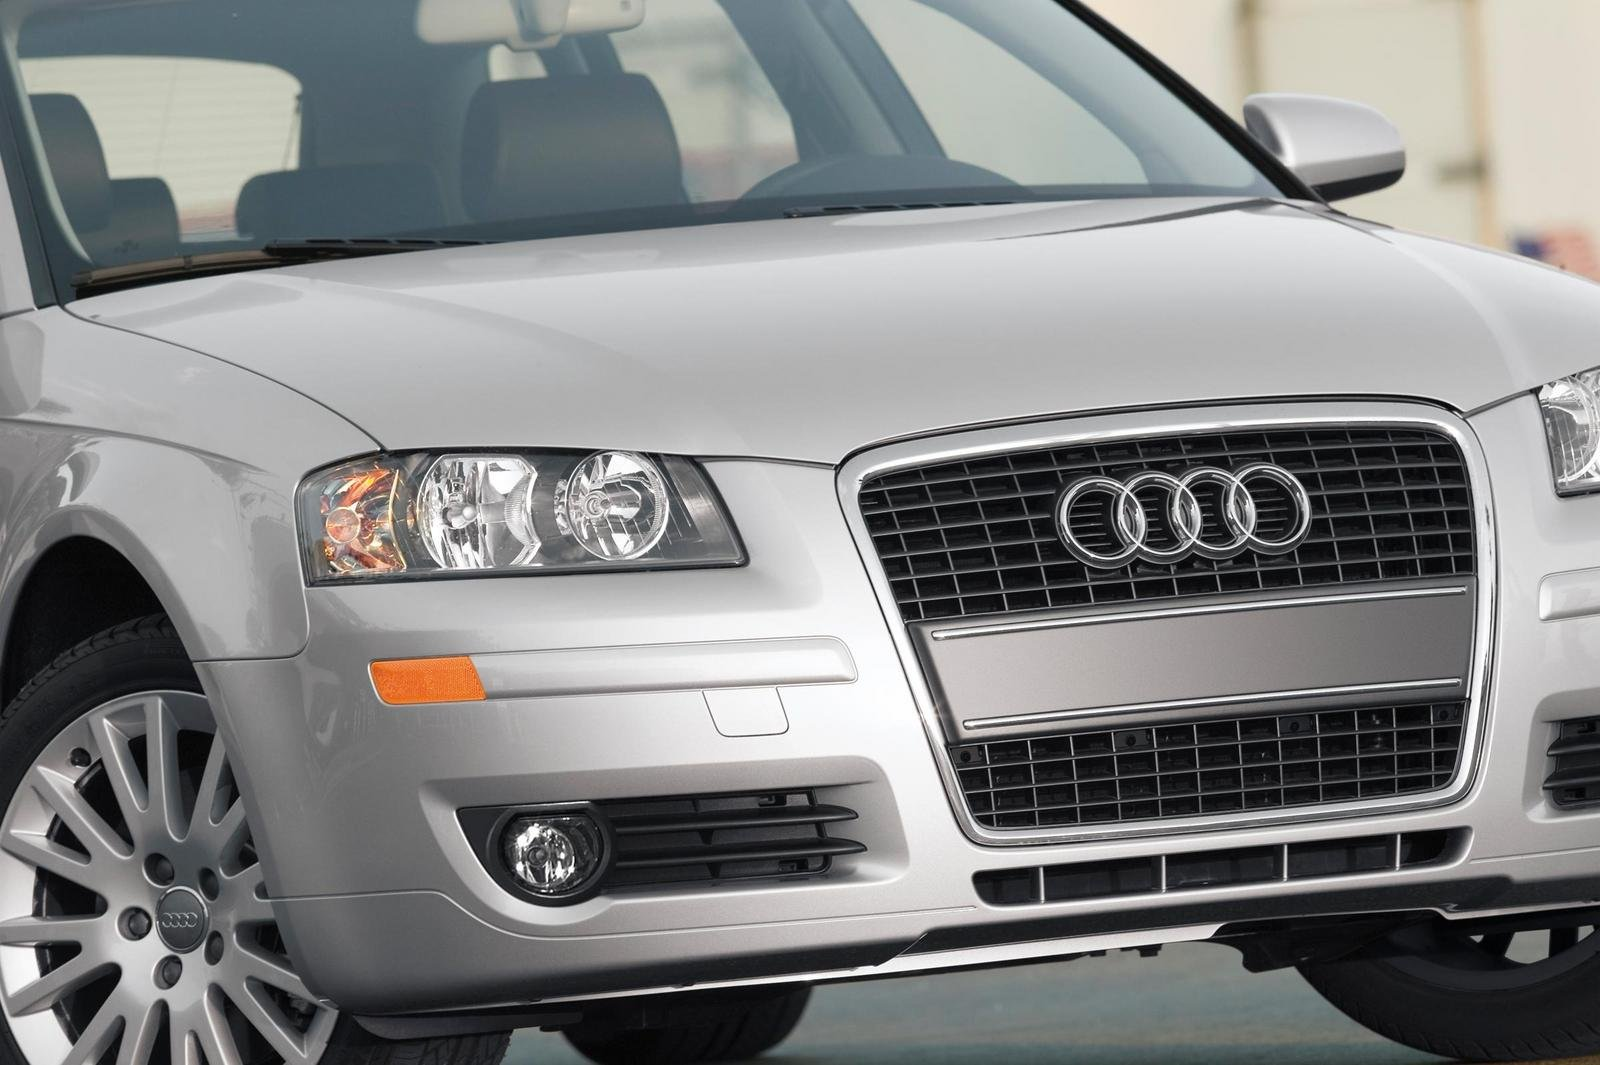 2007 audi a3 picture 99779 car review top speed. Black Bedroom Furniture Sets. Home Design Ideas